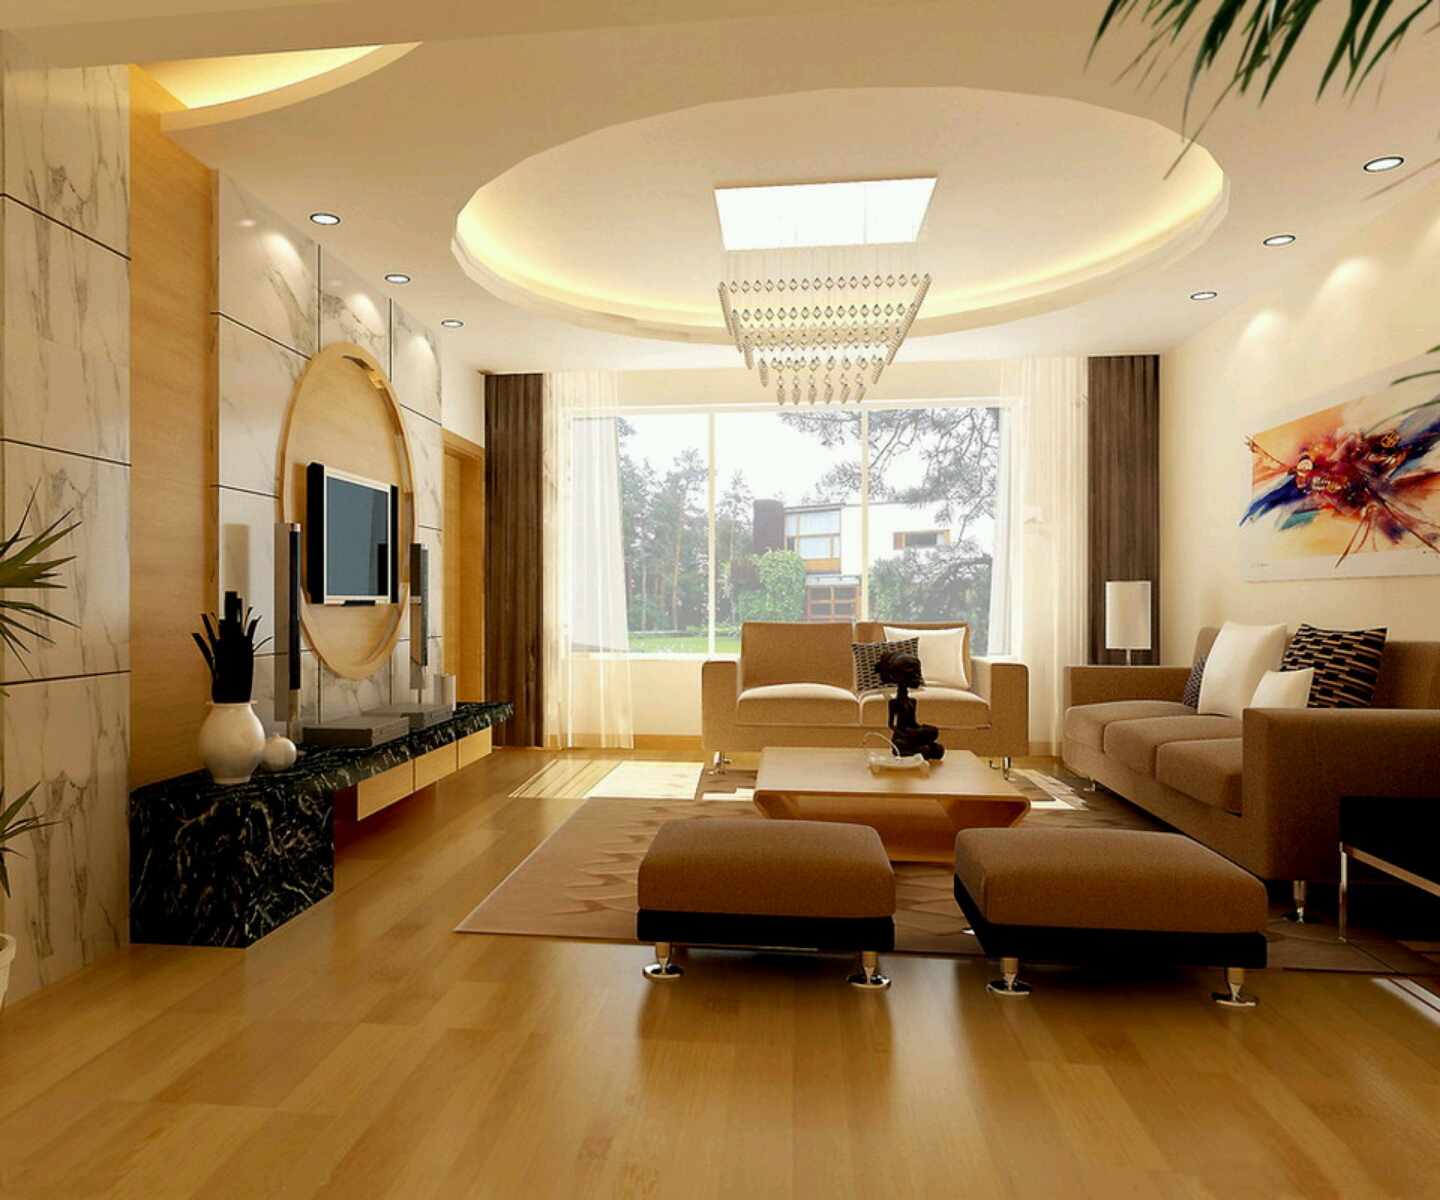 Modern interior decoration living rooms ceiling designs for Sitting design ideas